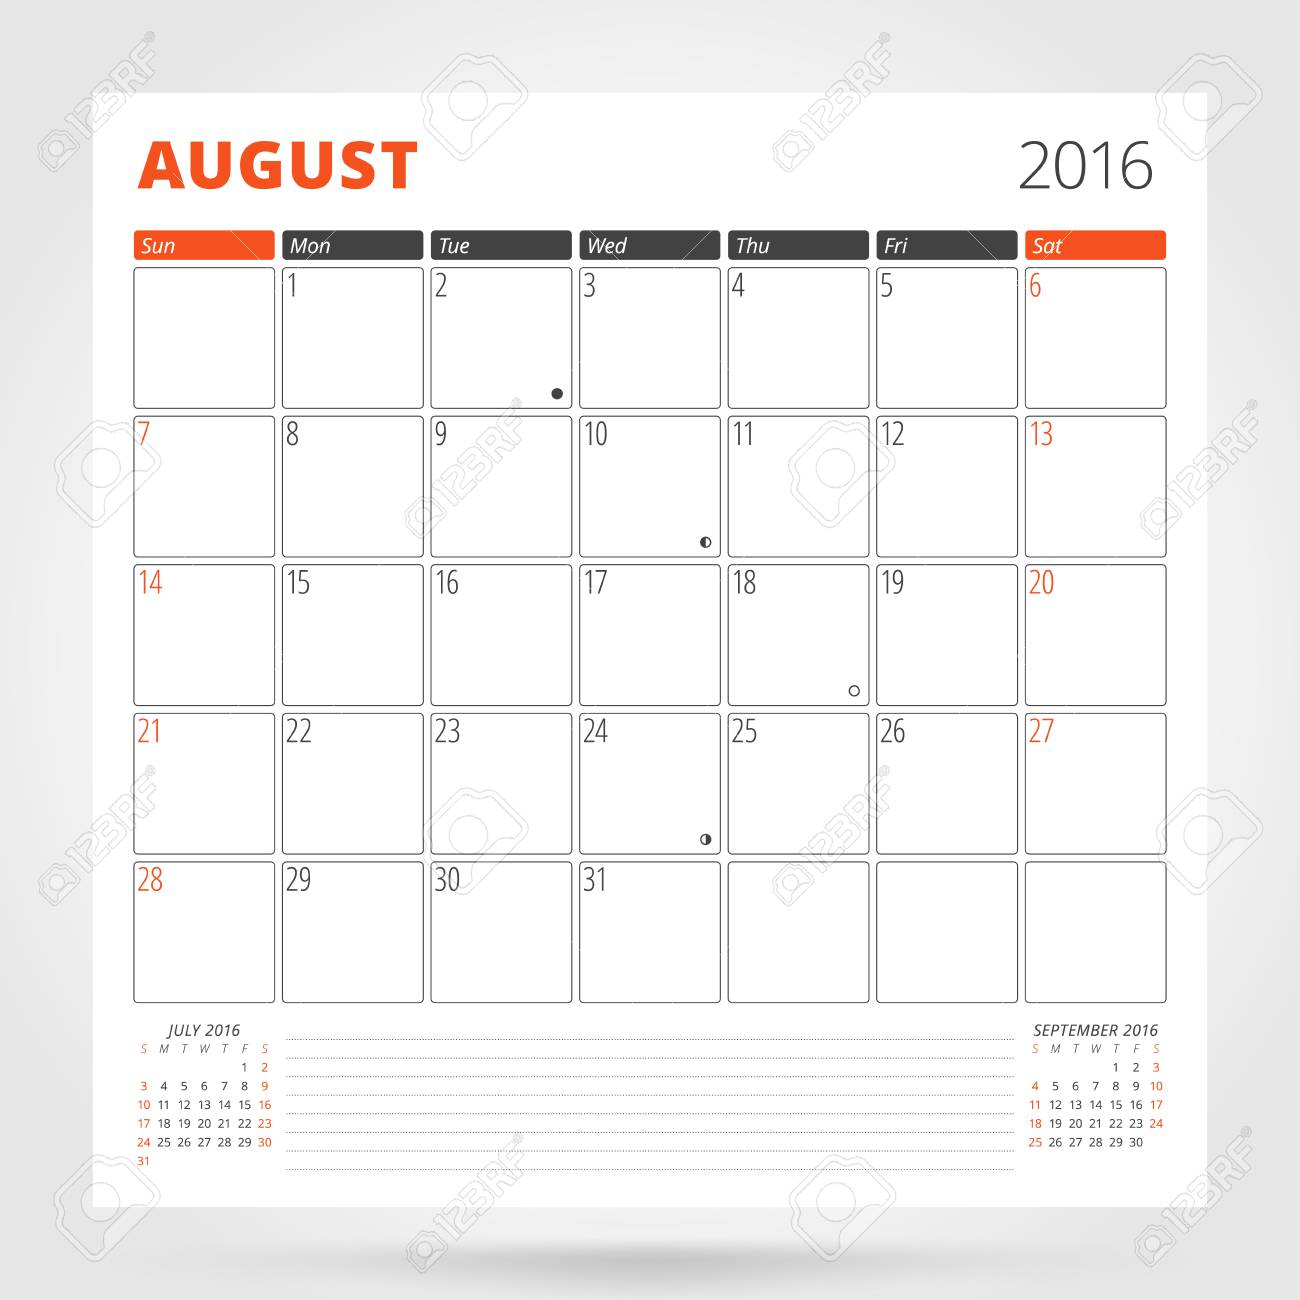 Calendar Planner For 2016 Year. August. Design Print Template..